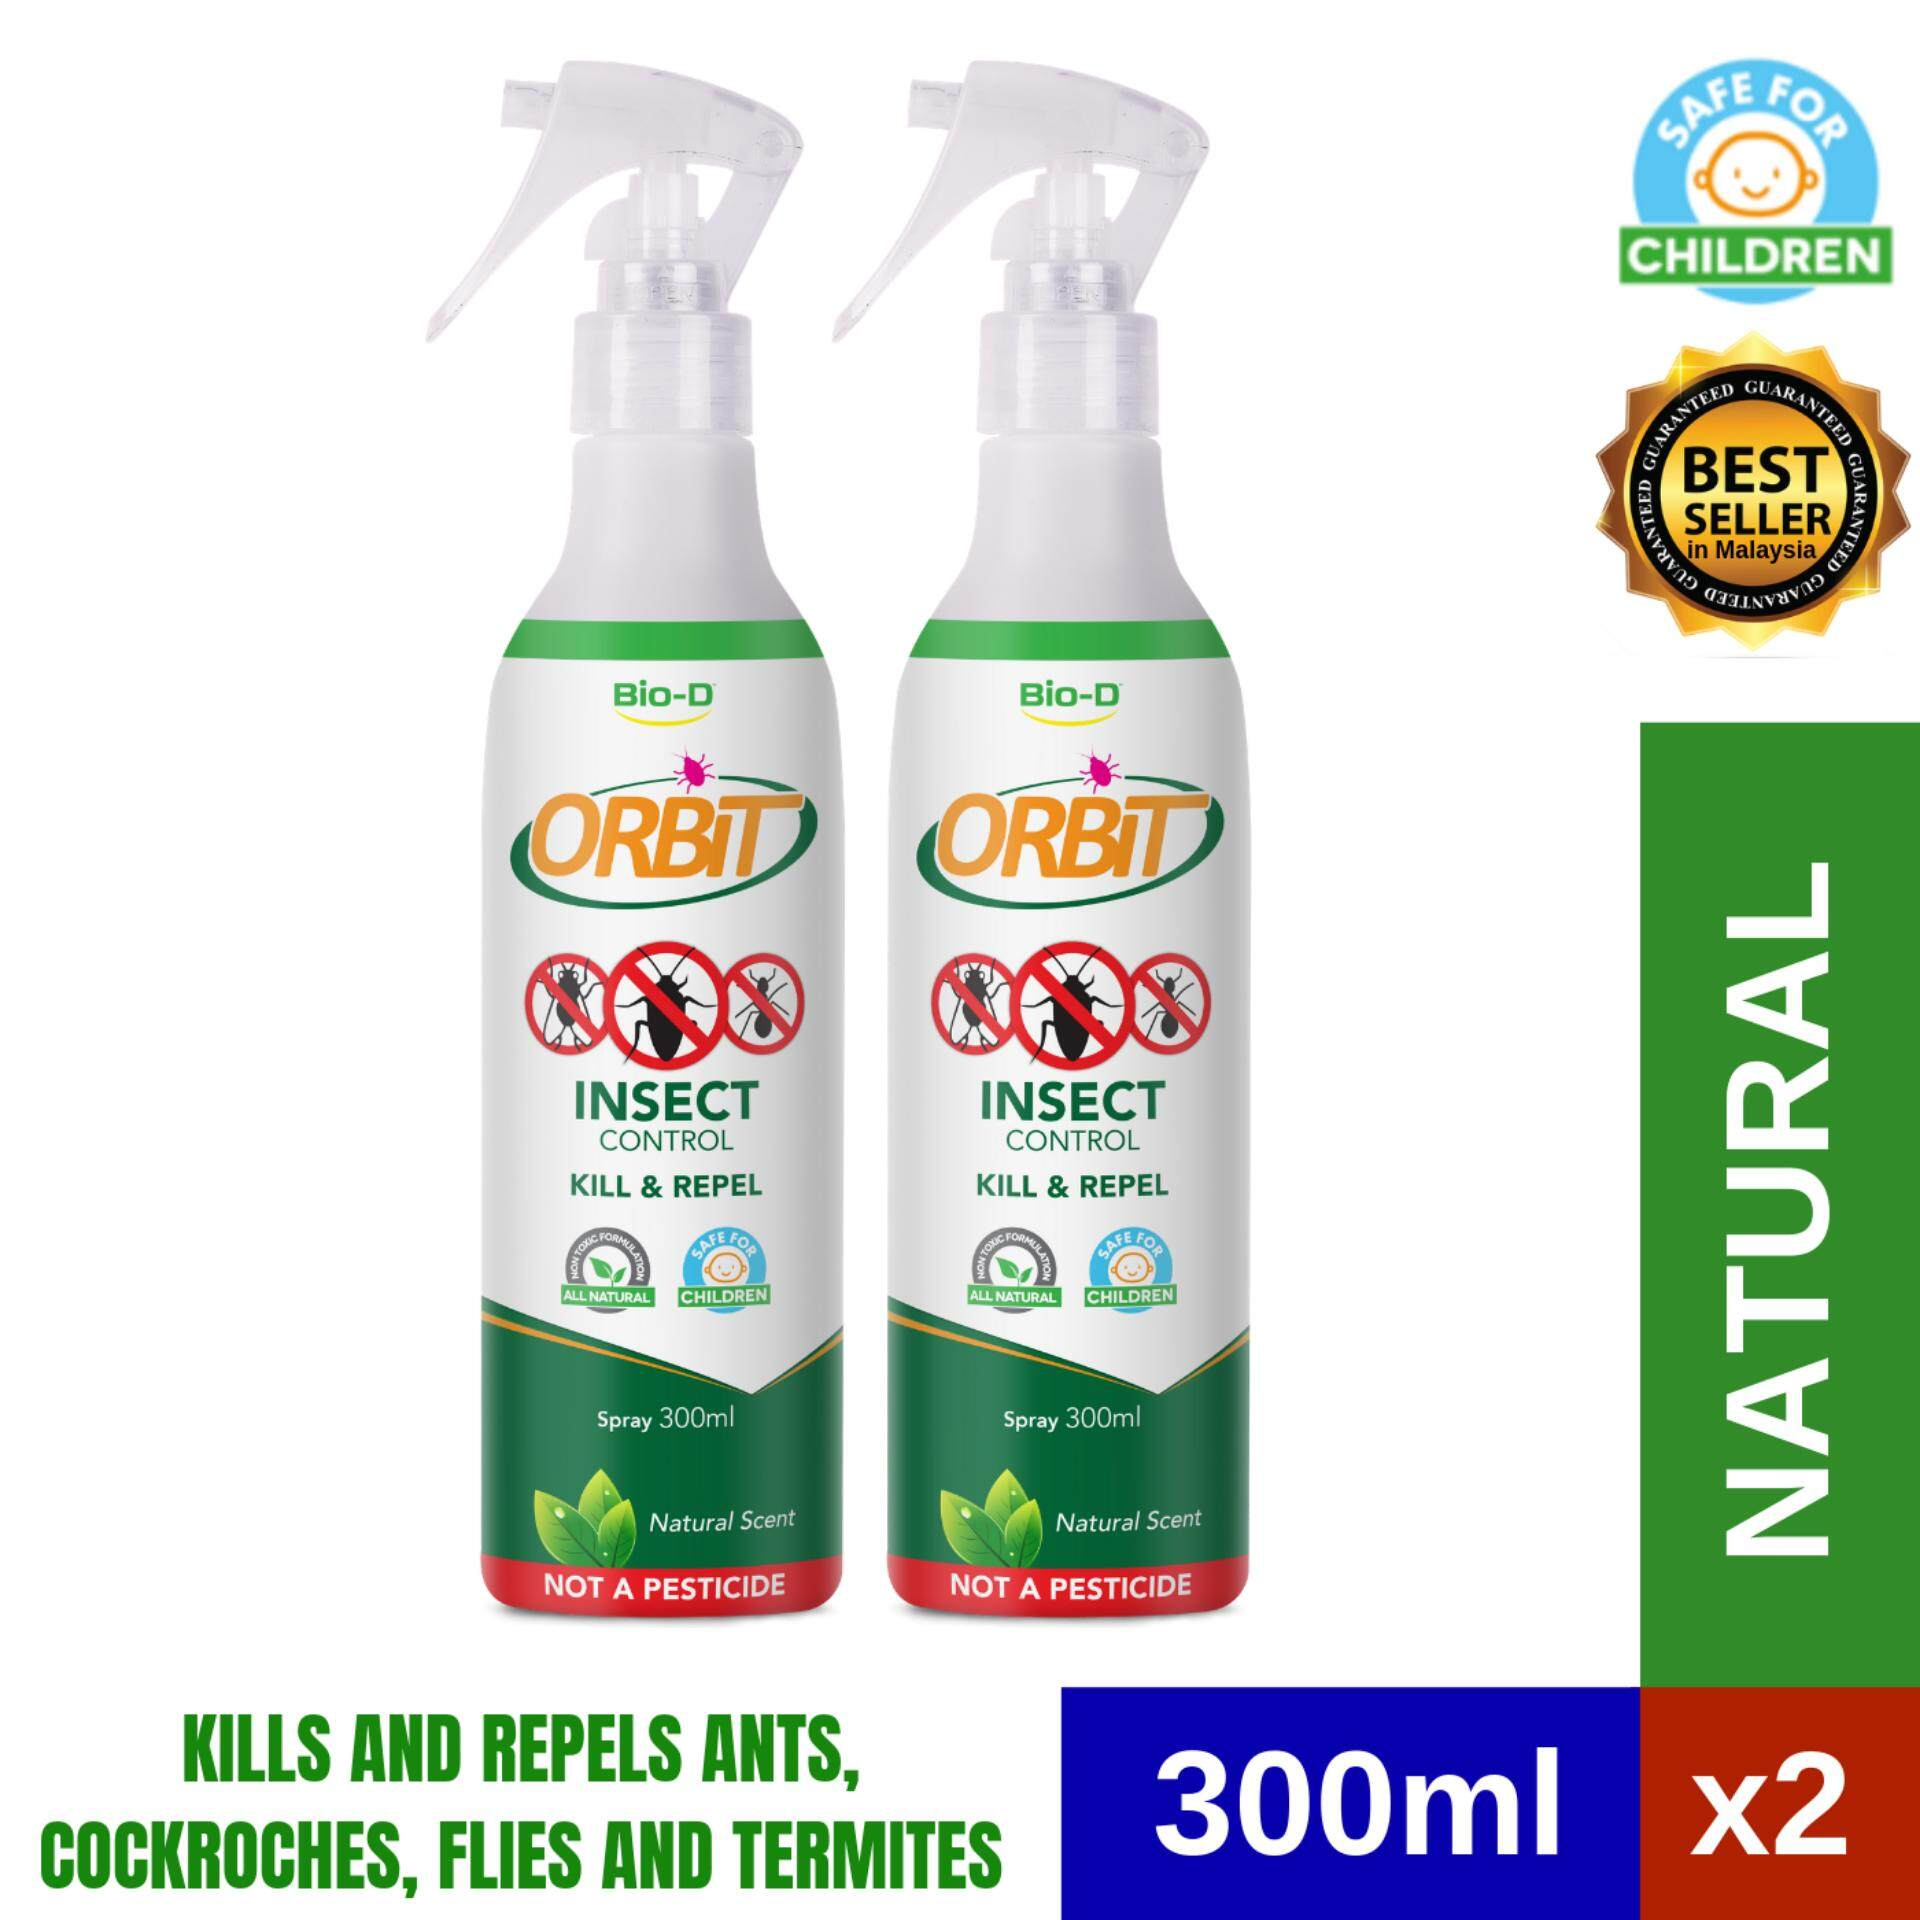 Bio-D Orbit Insect Control (Cockroaches, Termites, Ants) Spray 300ml (Natural) x 2